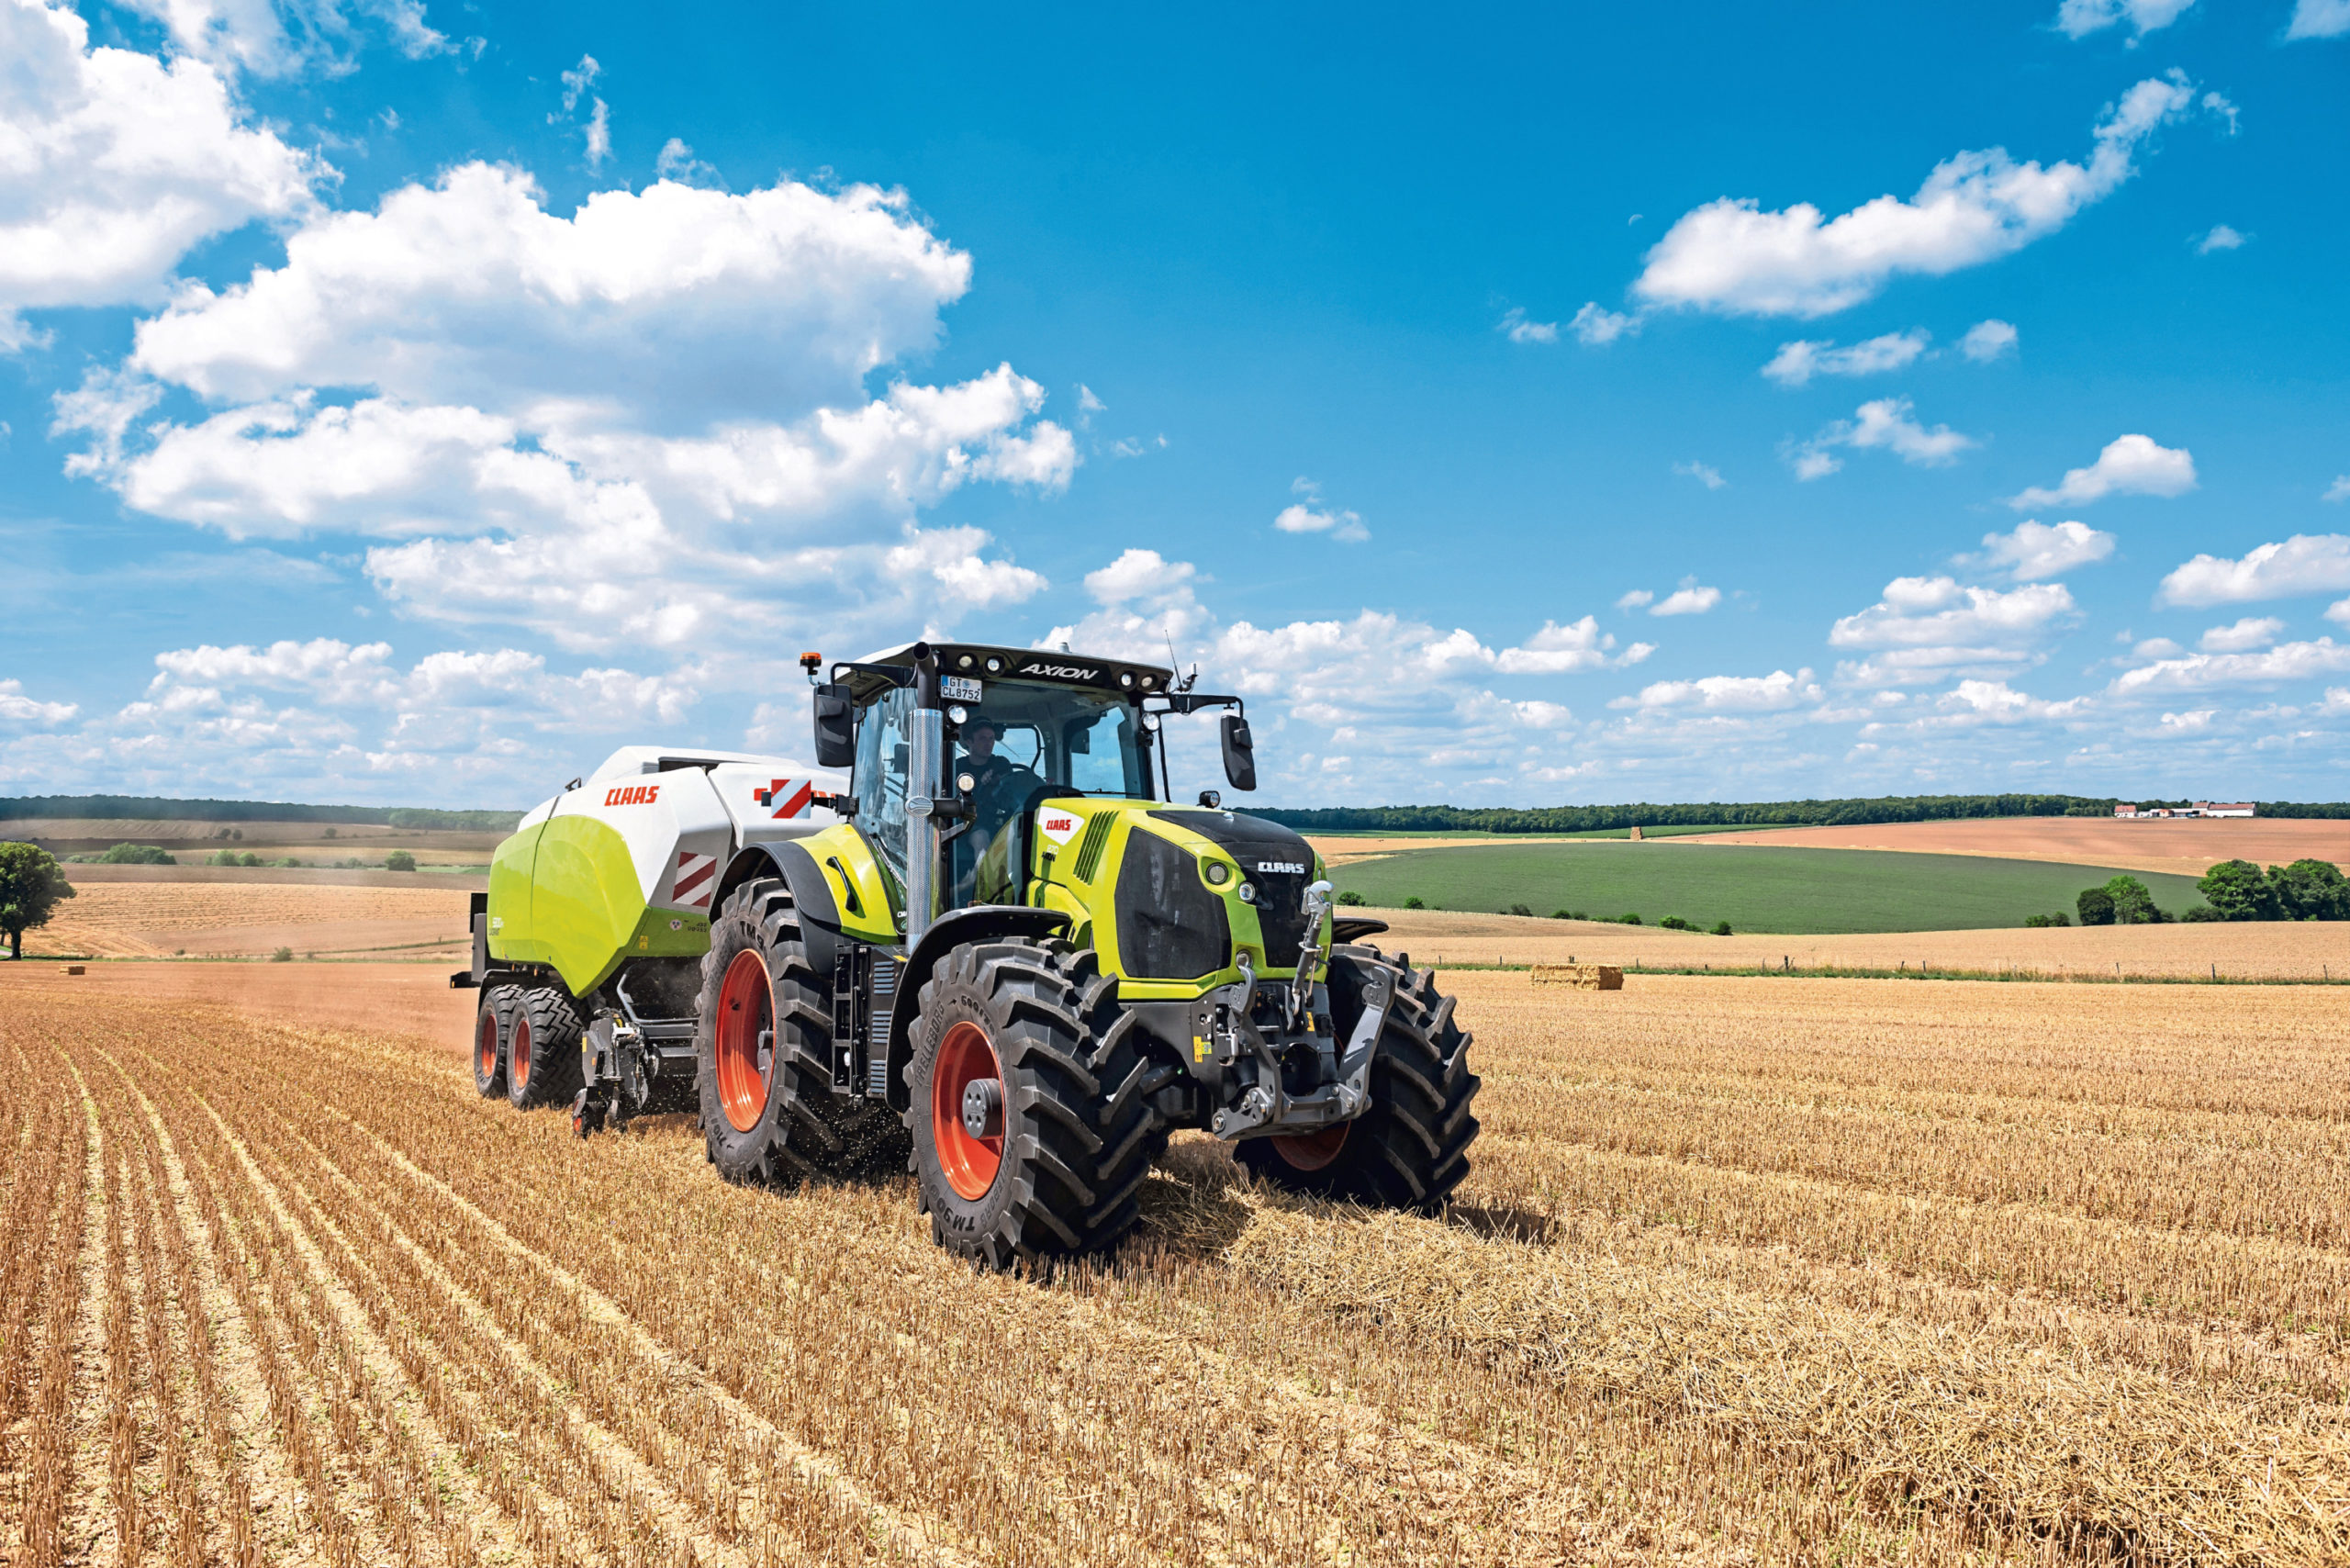 The Claas Axion 800  range of tractors has been upgraded with Stage V engines and new features.